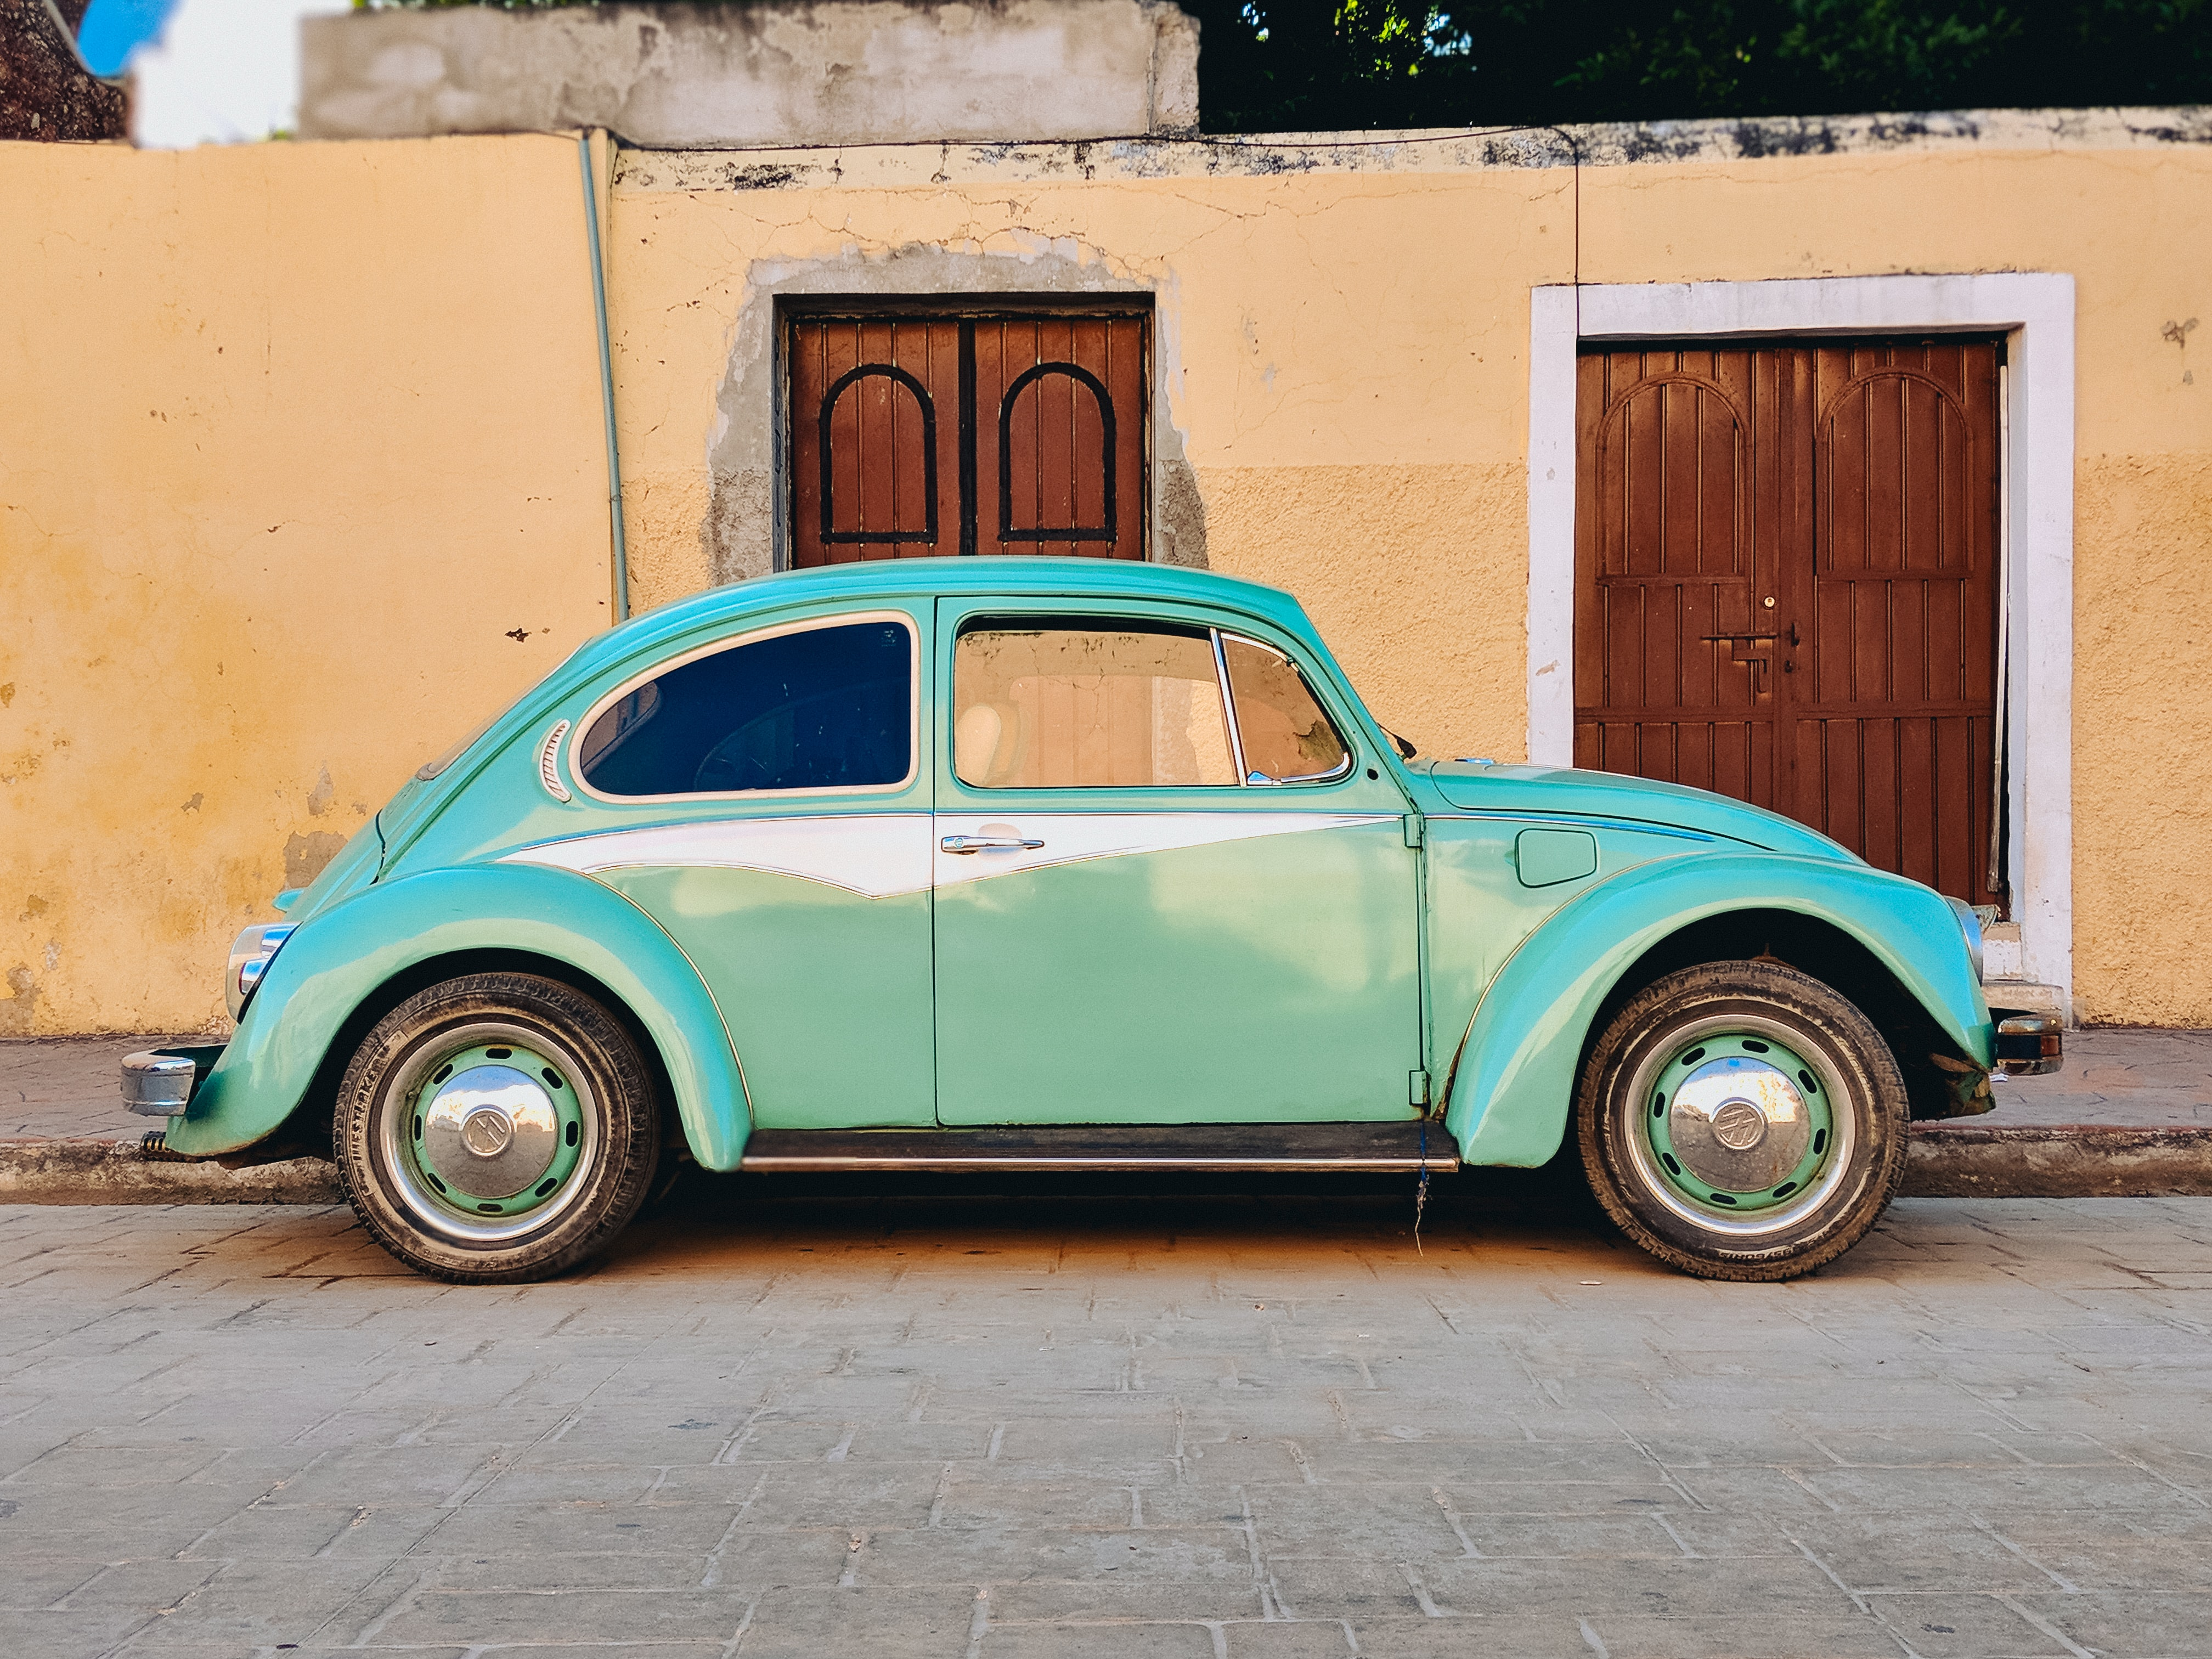 teal Volkswagen Beetle parked near brown house